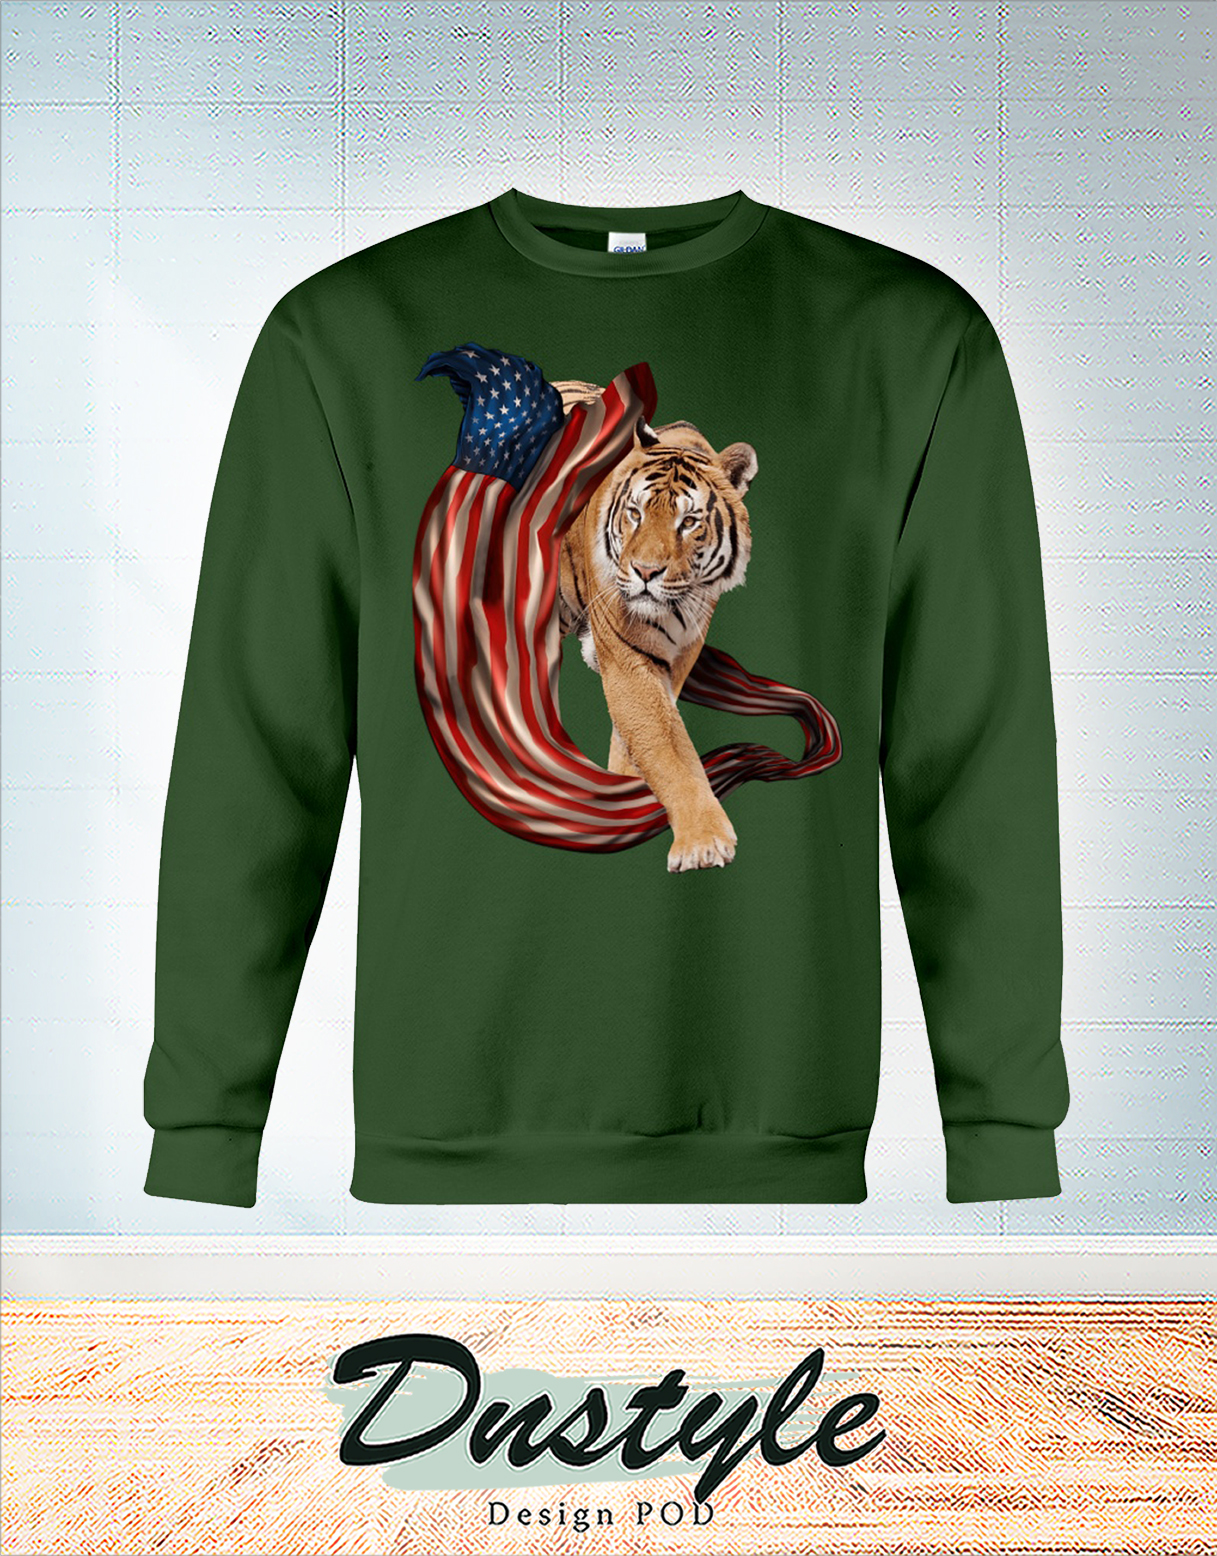 Tiger cool and freedom 4th july sweatshirt